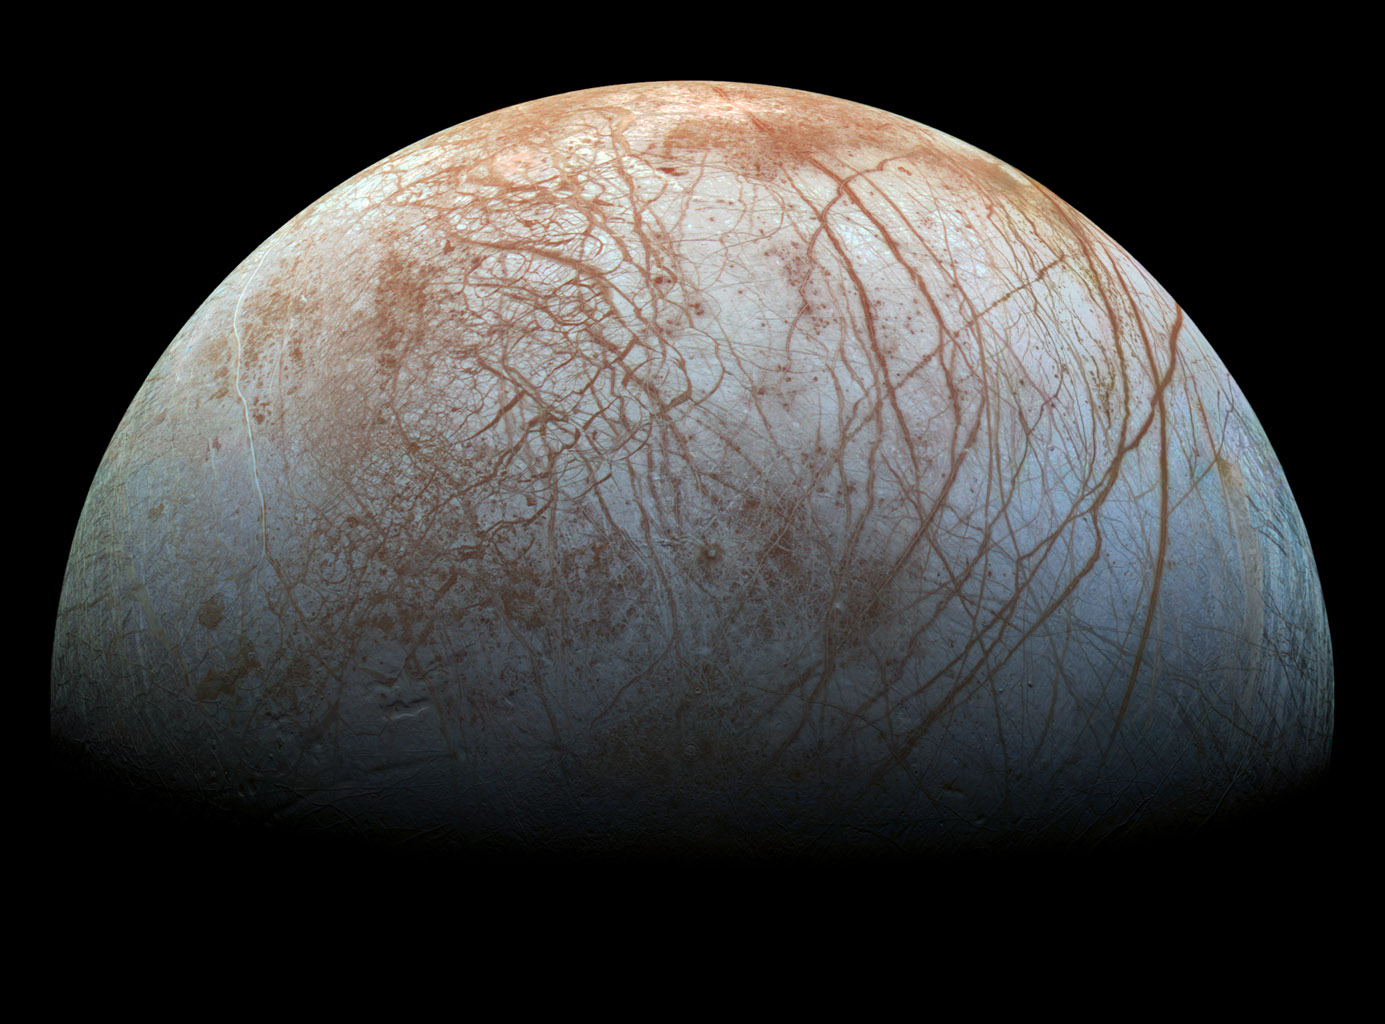 A different kind of Europeans: The discolored cracks of the Jovian moon Europa could suggest life